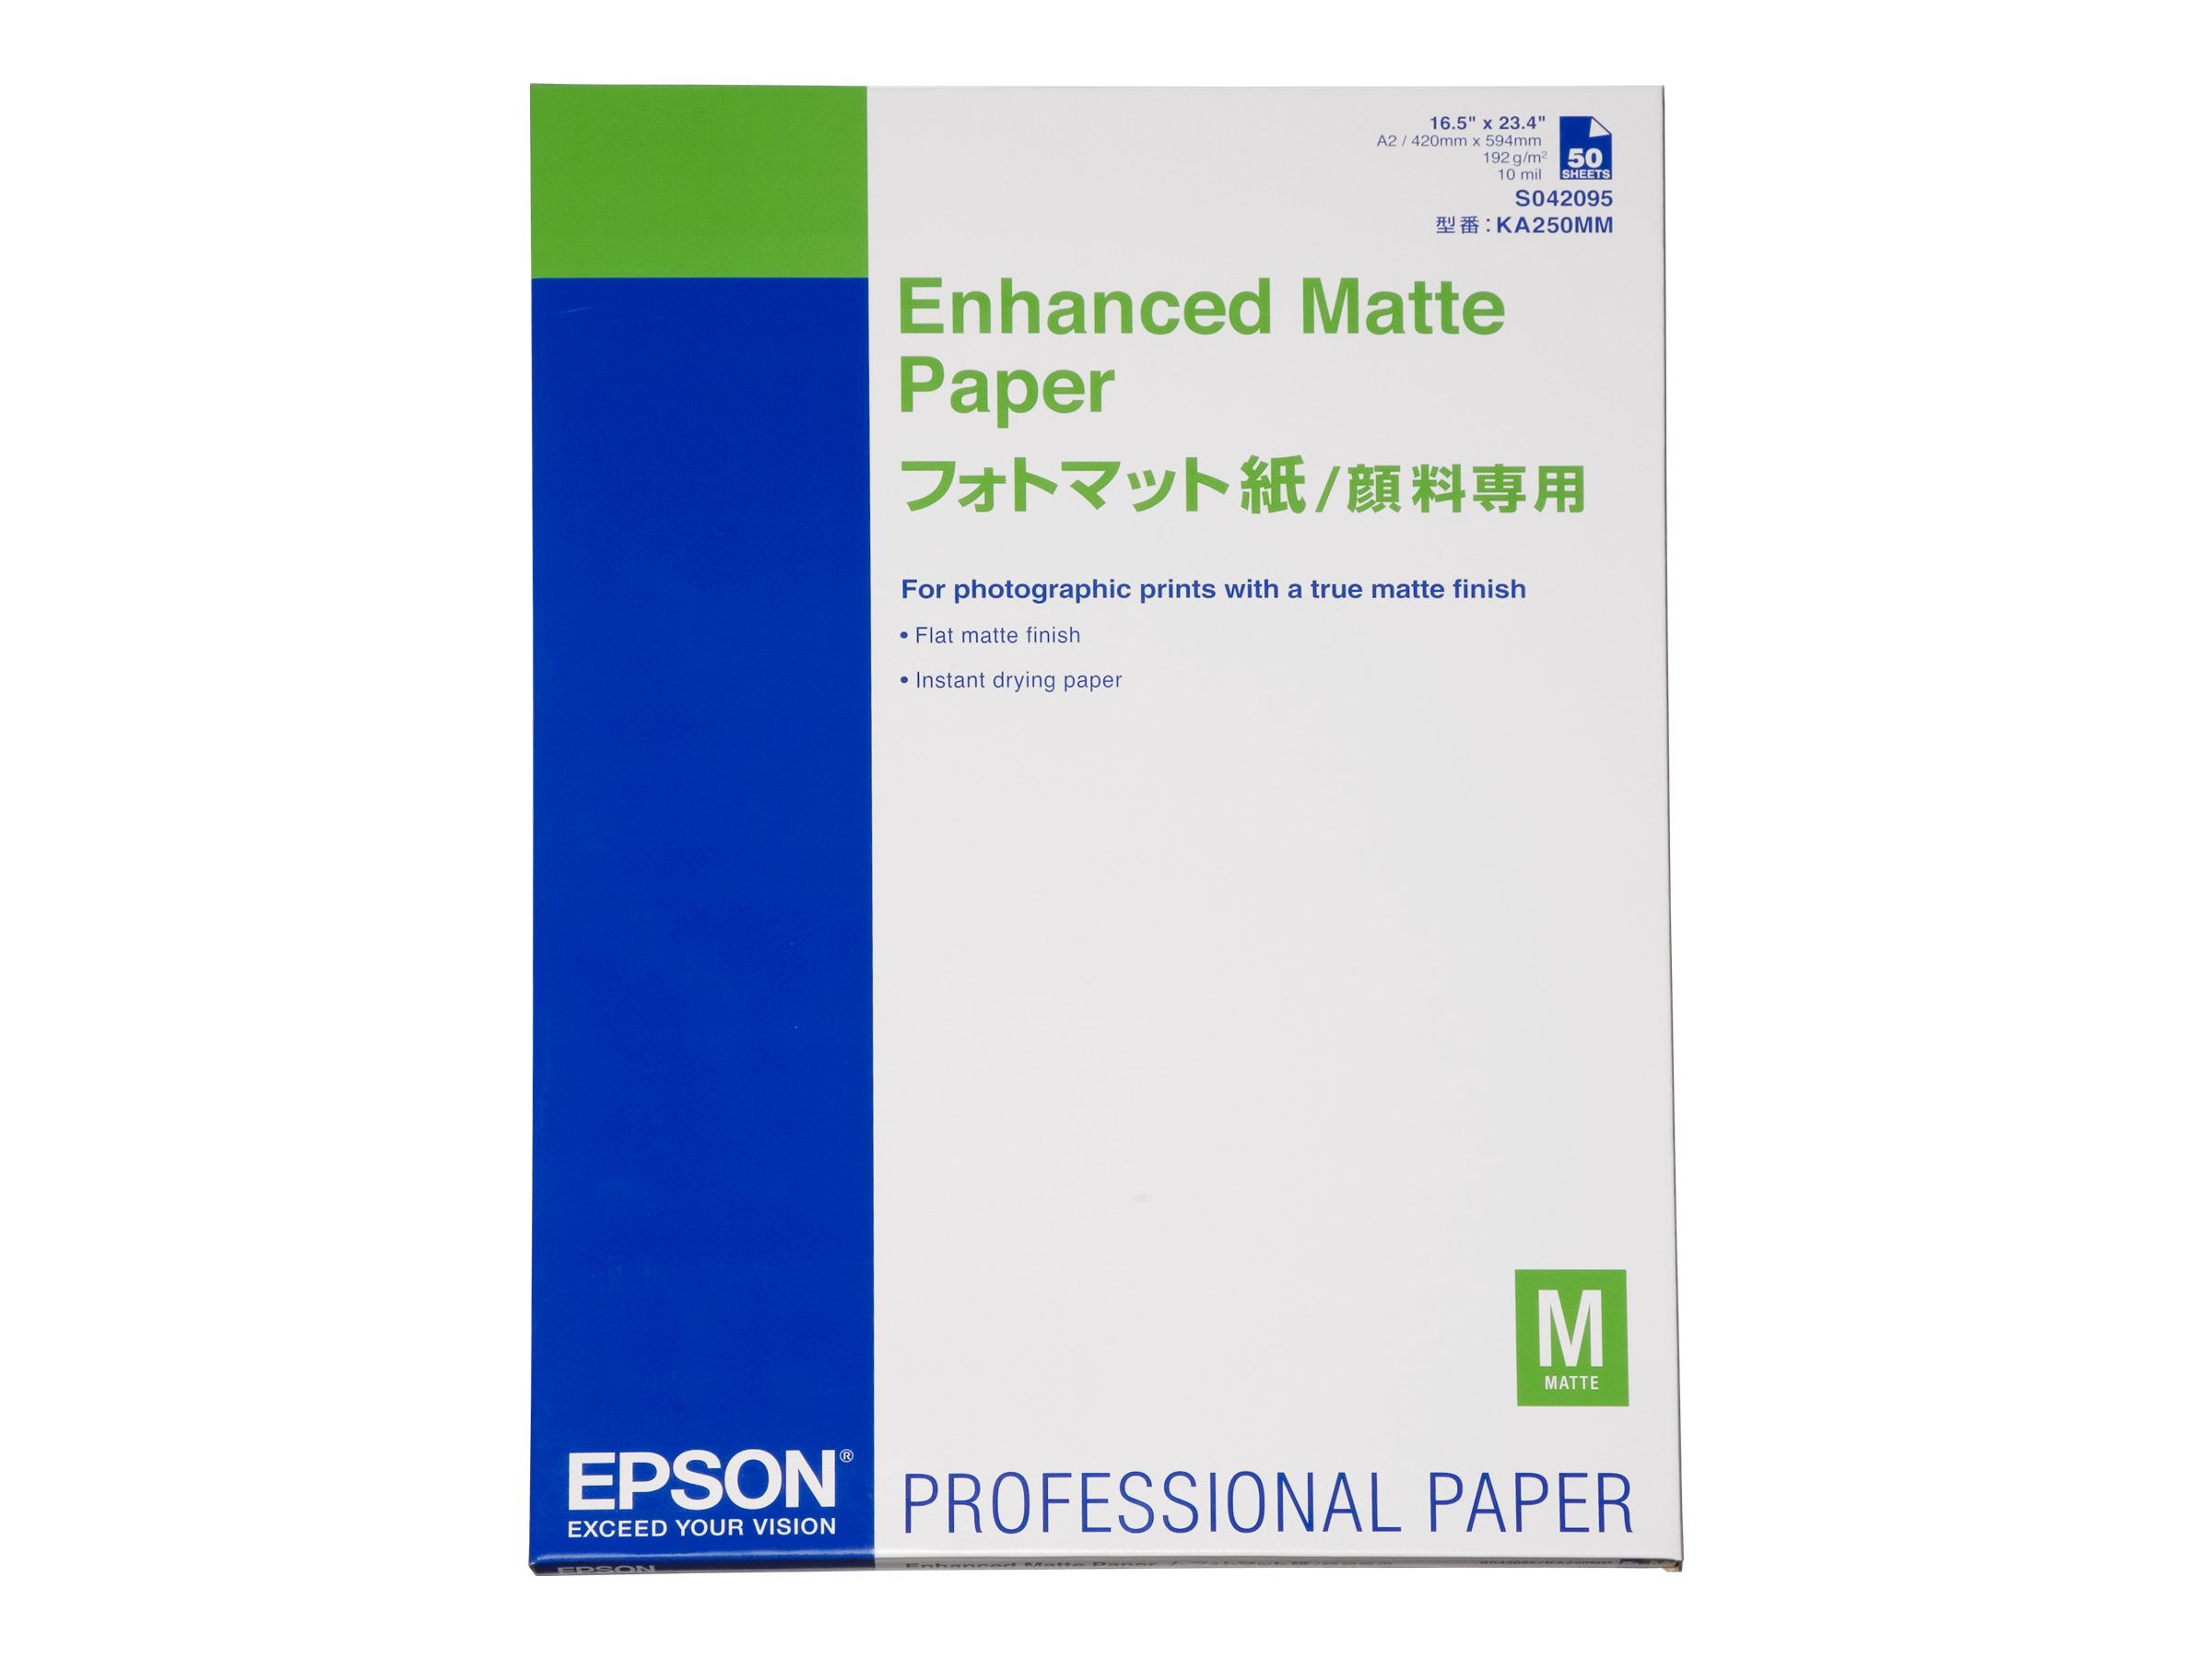 Epson Enhanced Matte - Matt - 260 Mikron - A2 (420 x 594 mm) - 192 g/m² - 50 Blatt Papier